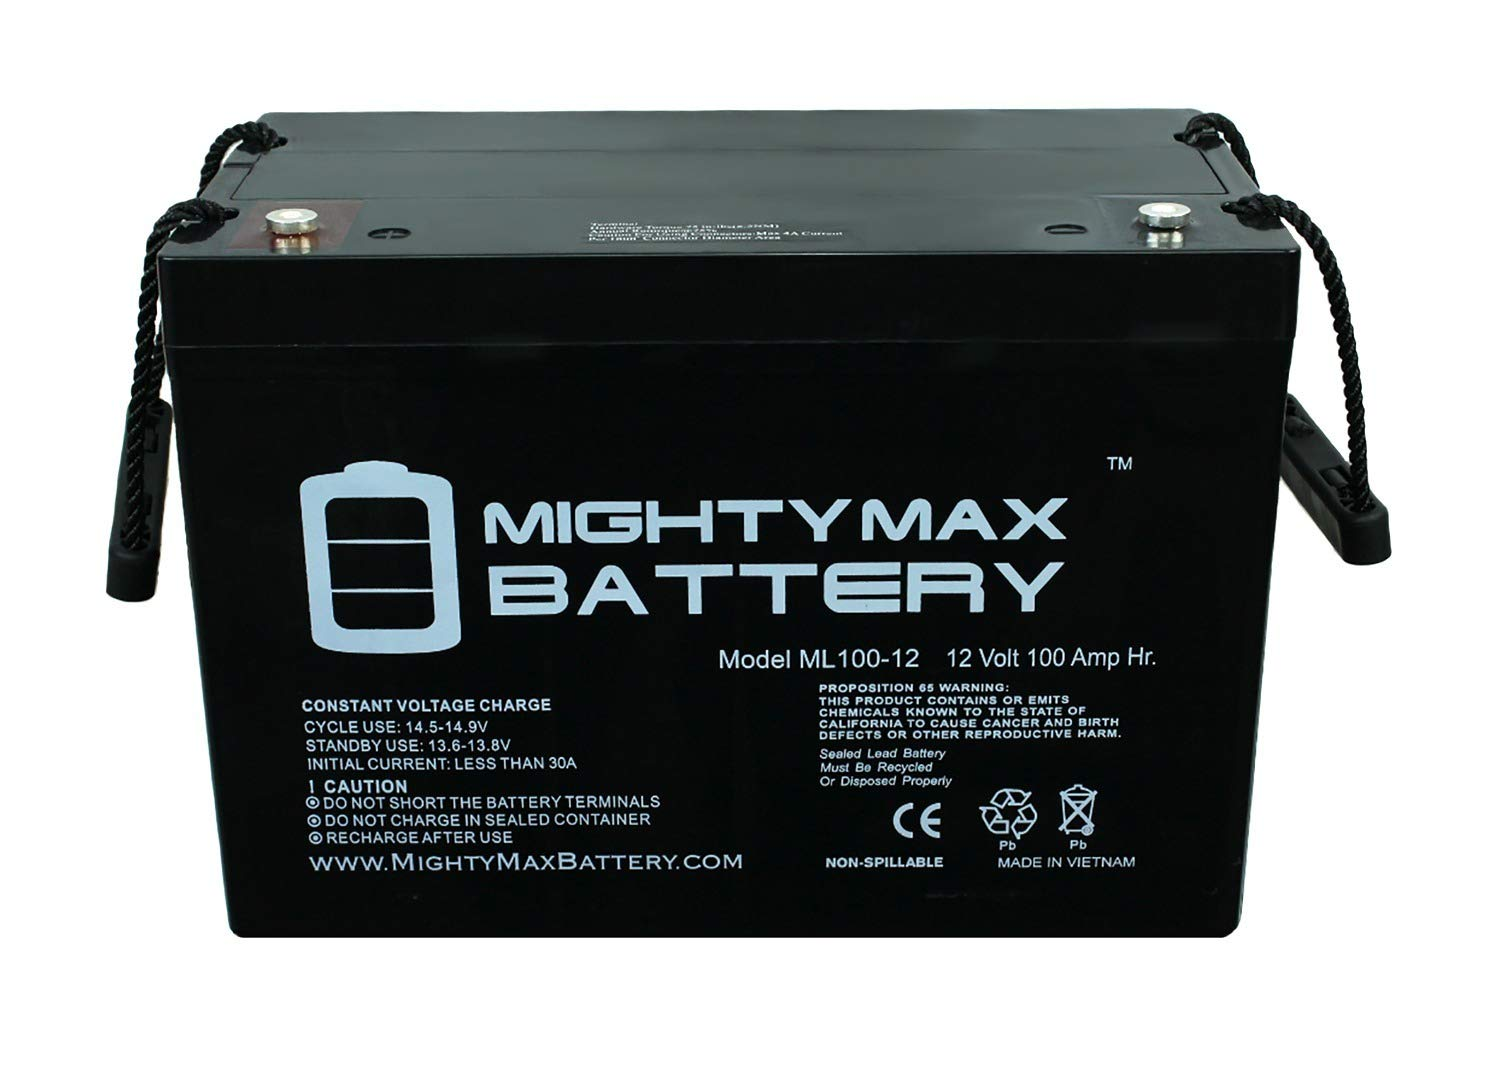 Mighty max - Best Camper Van Batteries